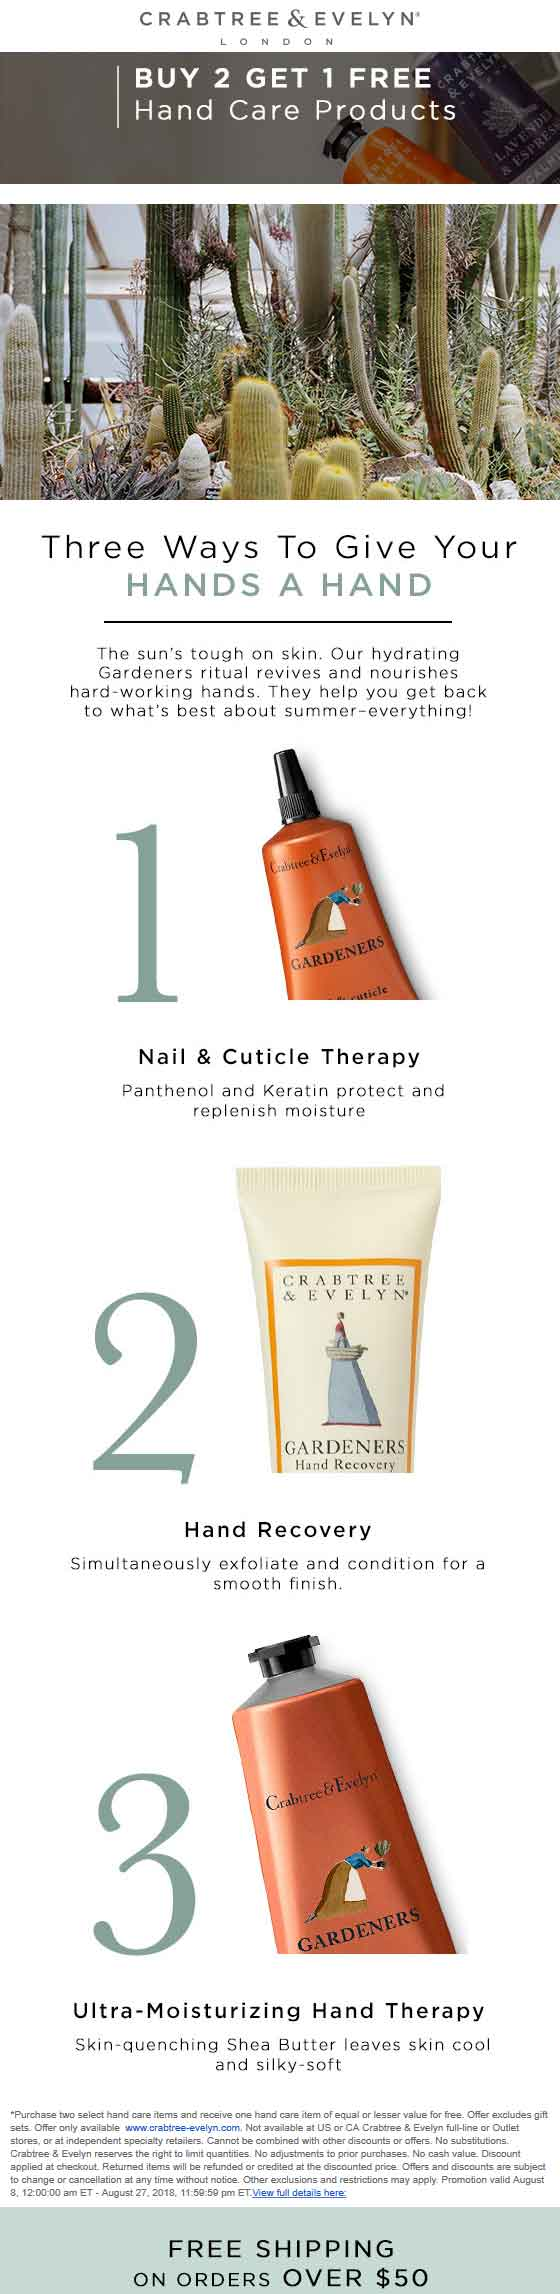 Crabtree & Evelyn coupons & promo code for [June 2020]